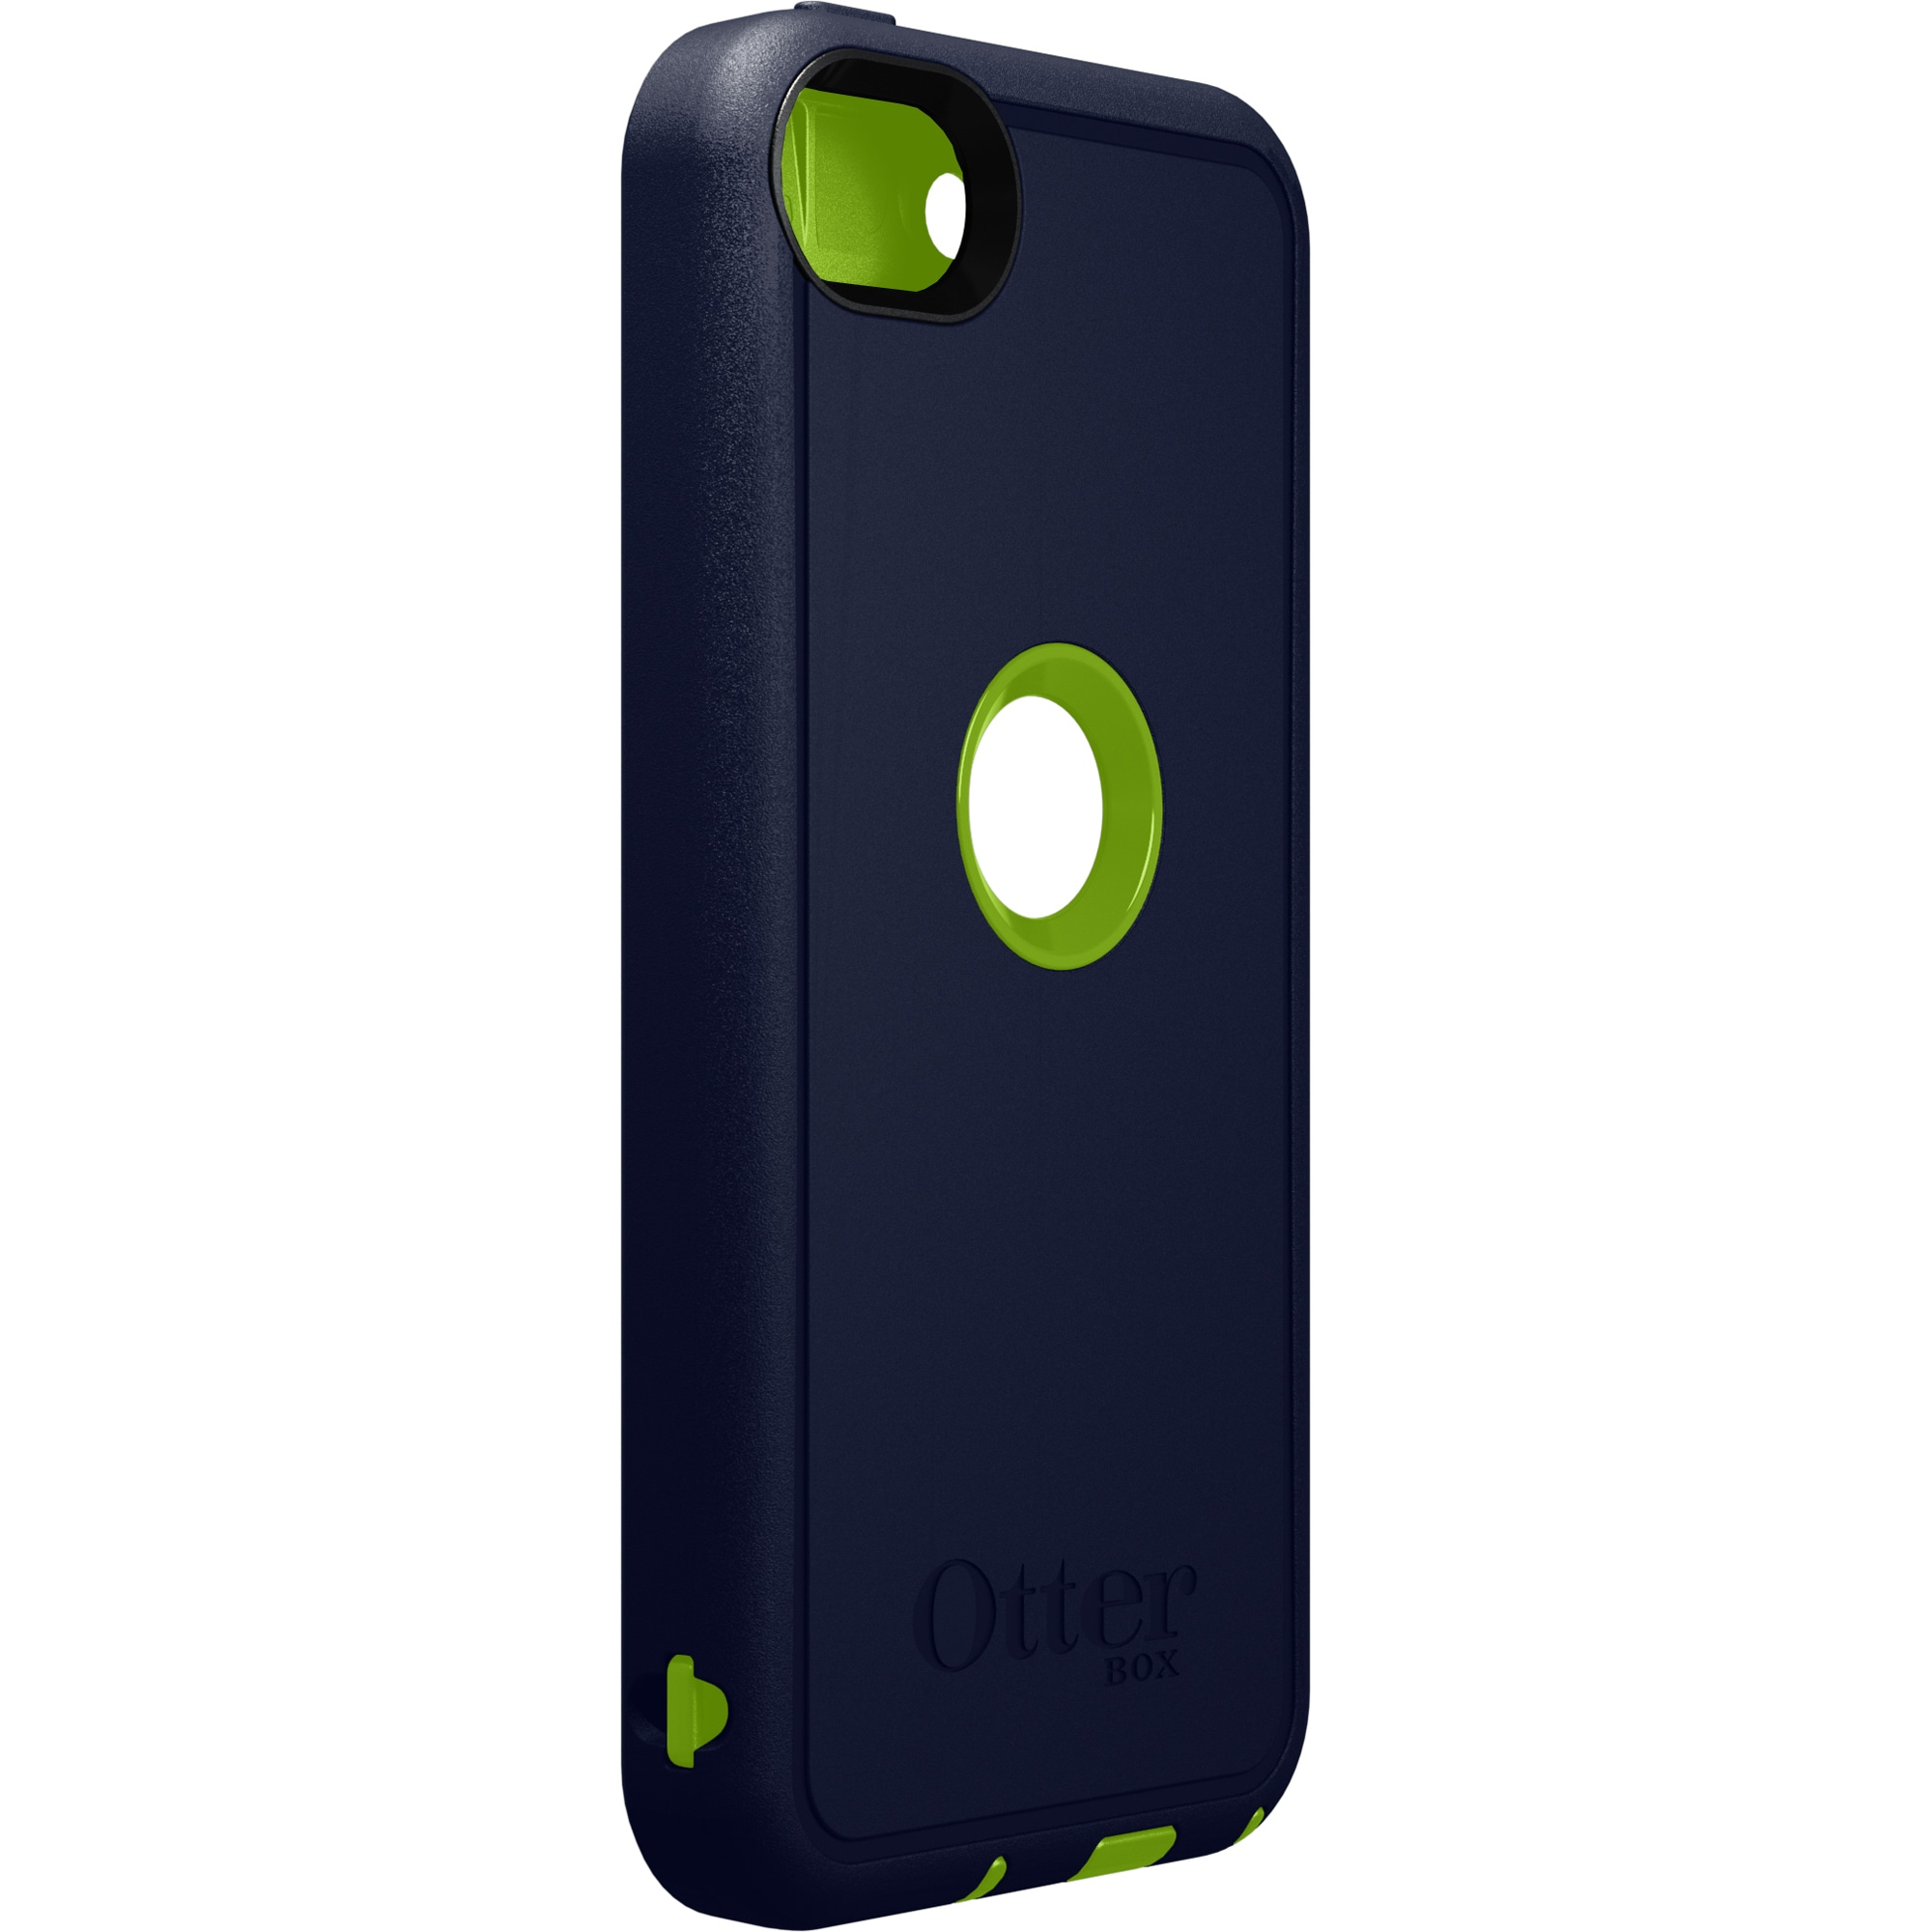 Otterbox Carrying Case for iPod #77-25219